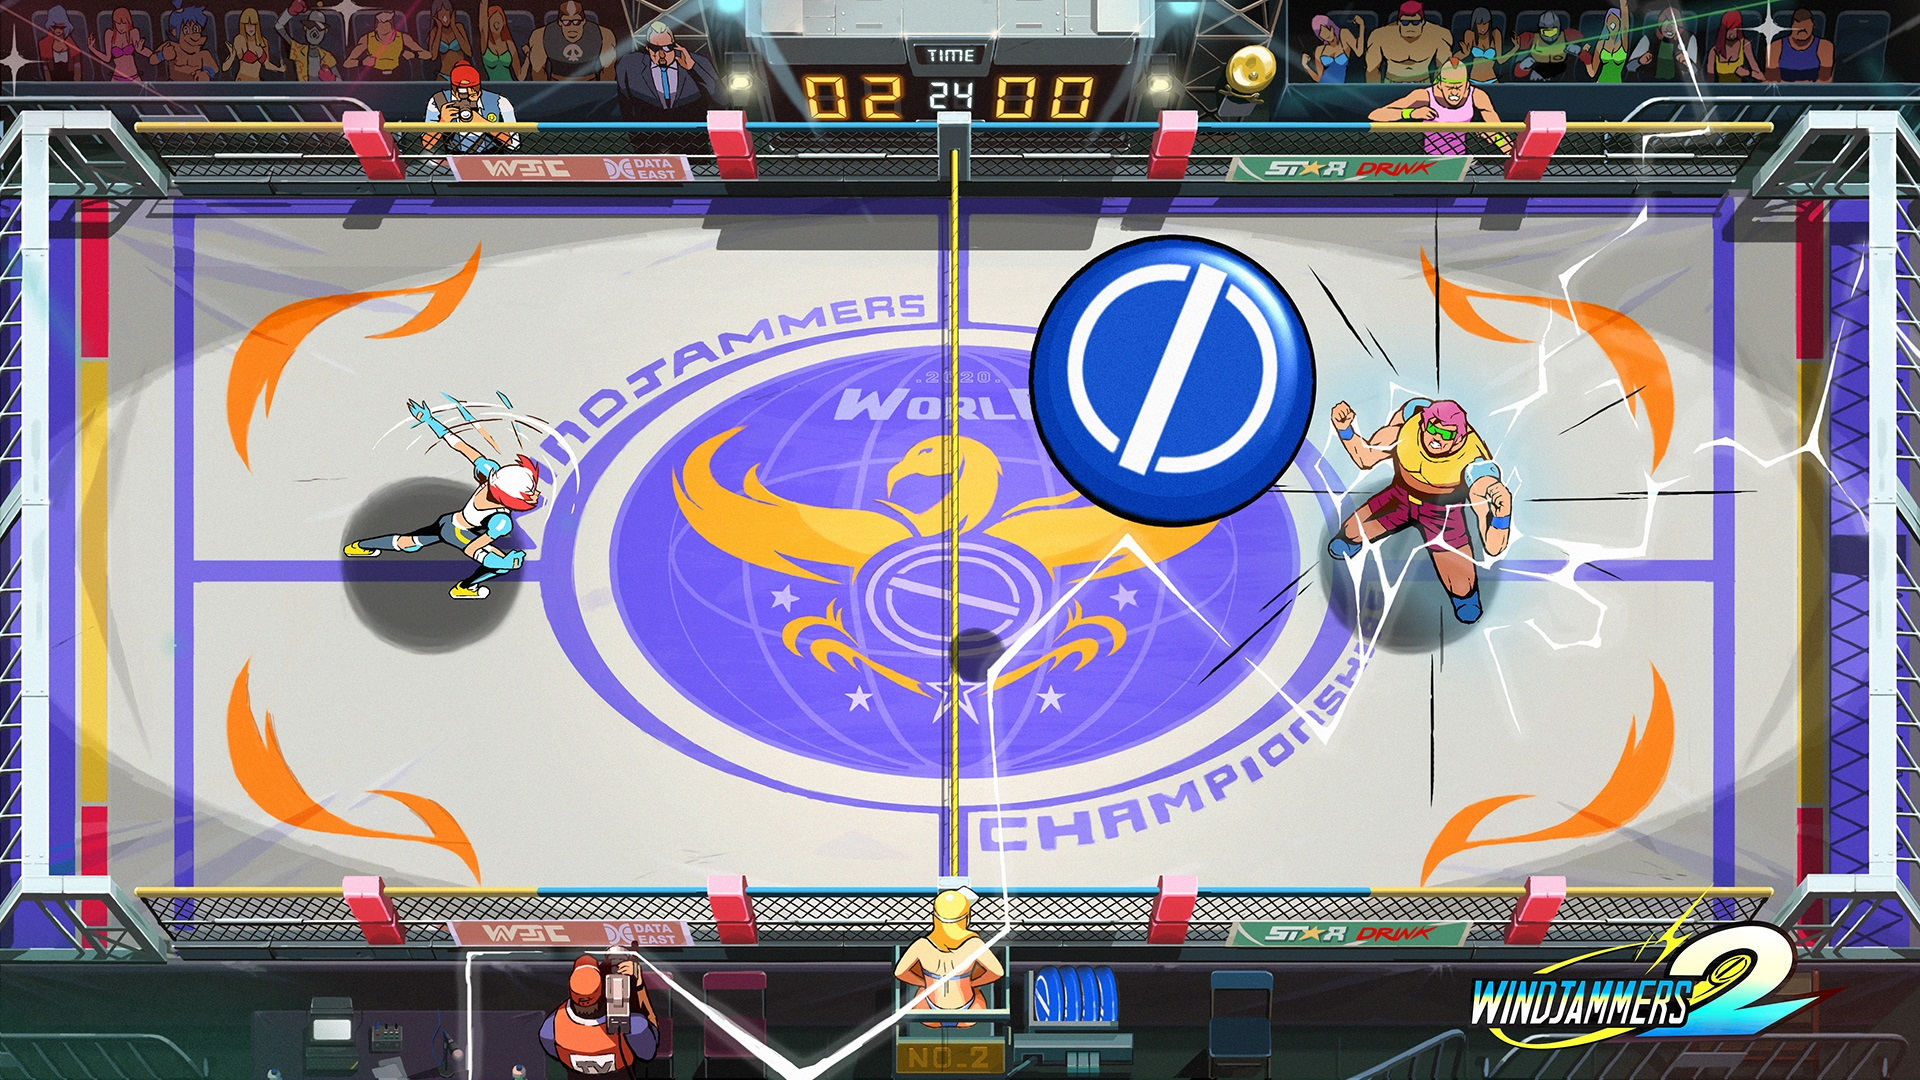 Neo Geo cult favourite frisbee-fighter Windjammers is getting a sequel